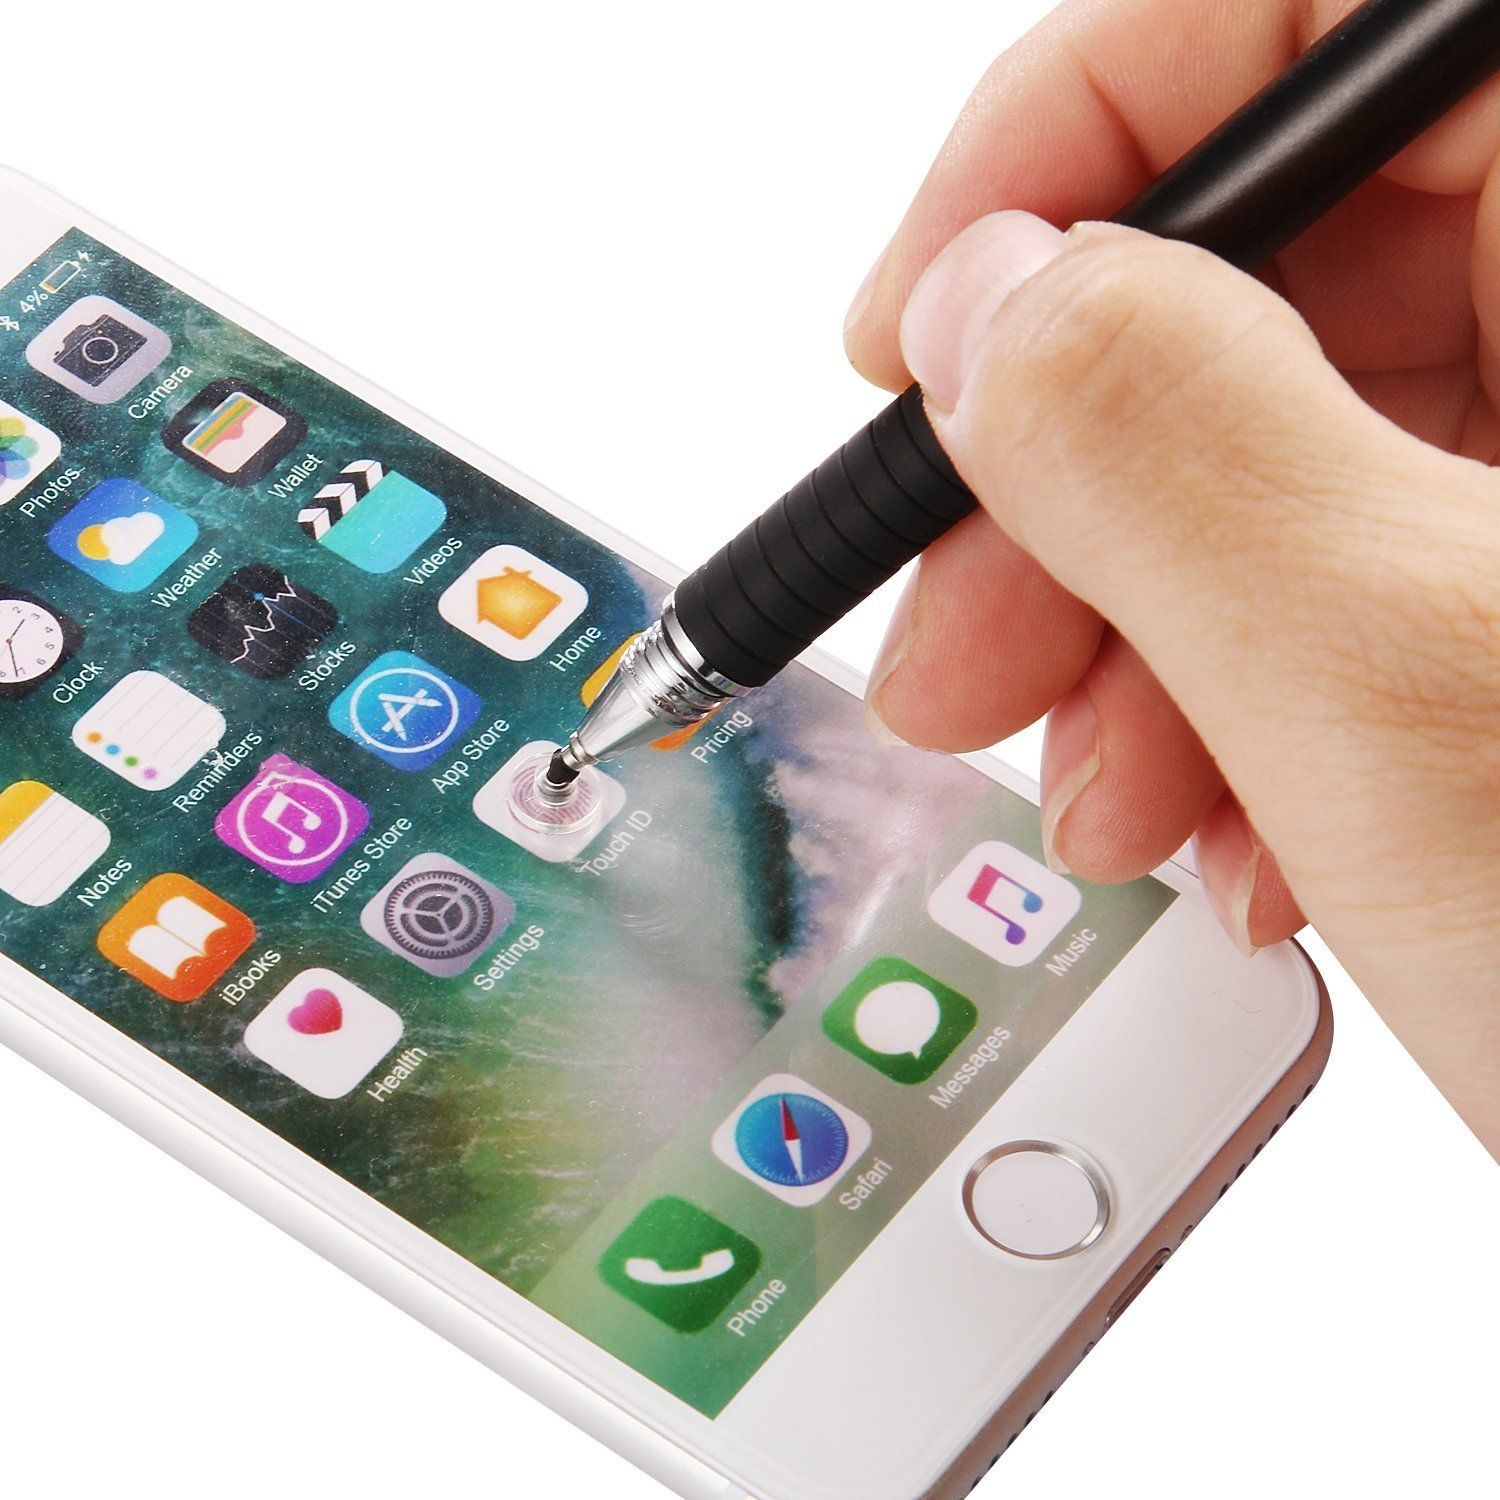 Stylus pens,Mixoo 2 in 1 Universal Capacitive Precision Styli with 2 Disc Tips/&1 Fabric Tip,for most Mobile Phones,Tablets,i pad,Apple iphone 5 6 7 8,Huawei and Many Touch Screen Devices black